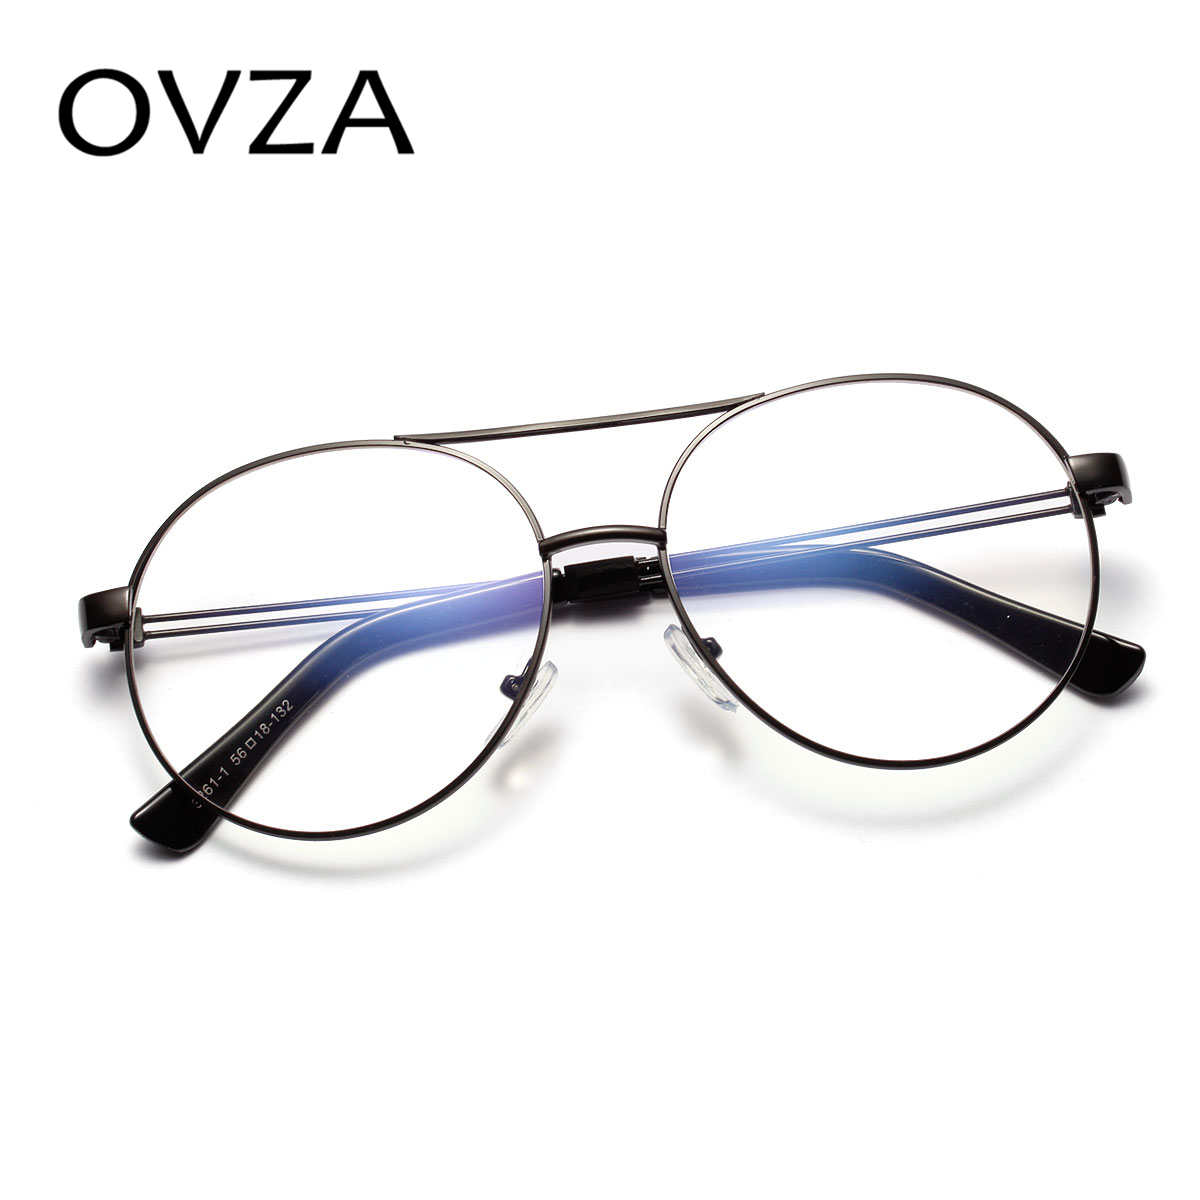 OVZA Retro Glasses Frames Women Fashion Metal Reading Glasses Men ...